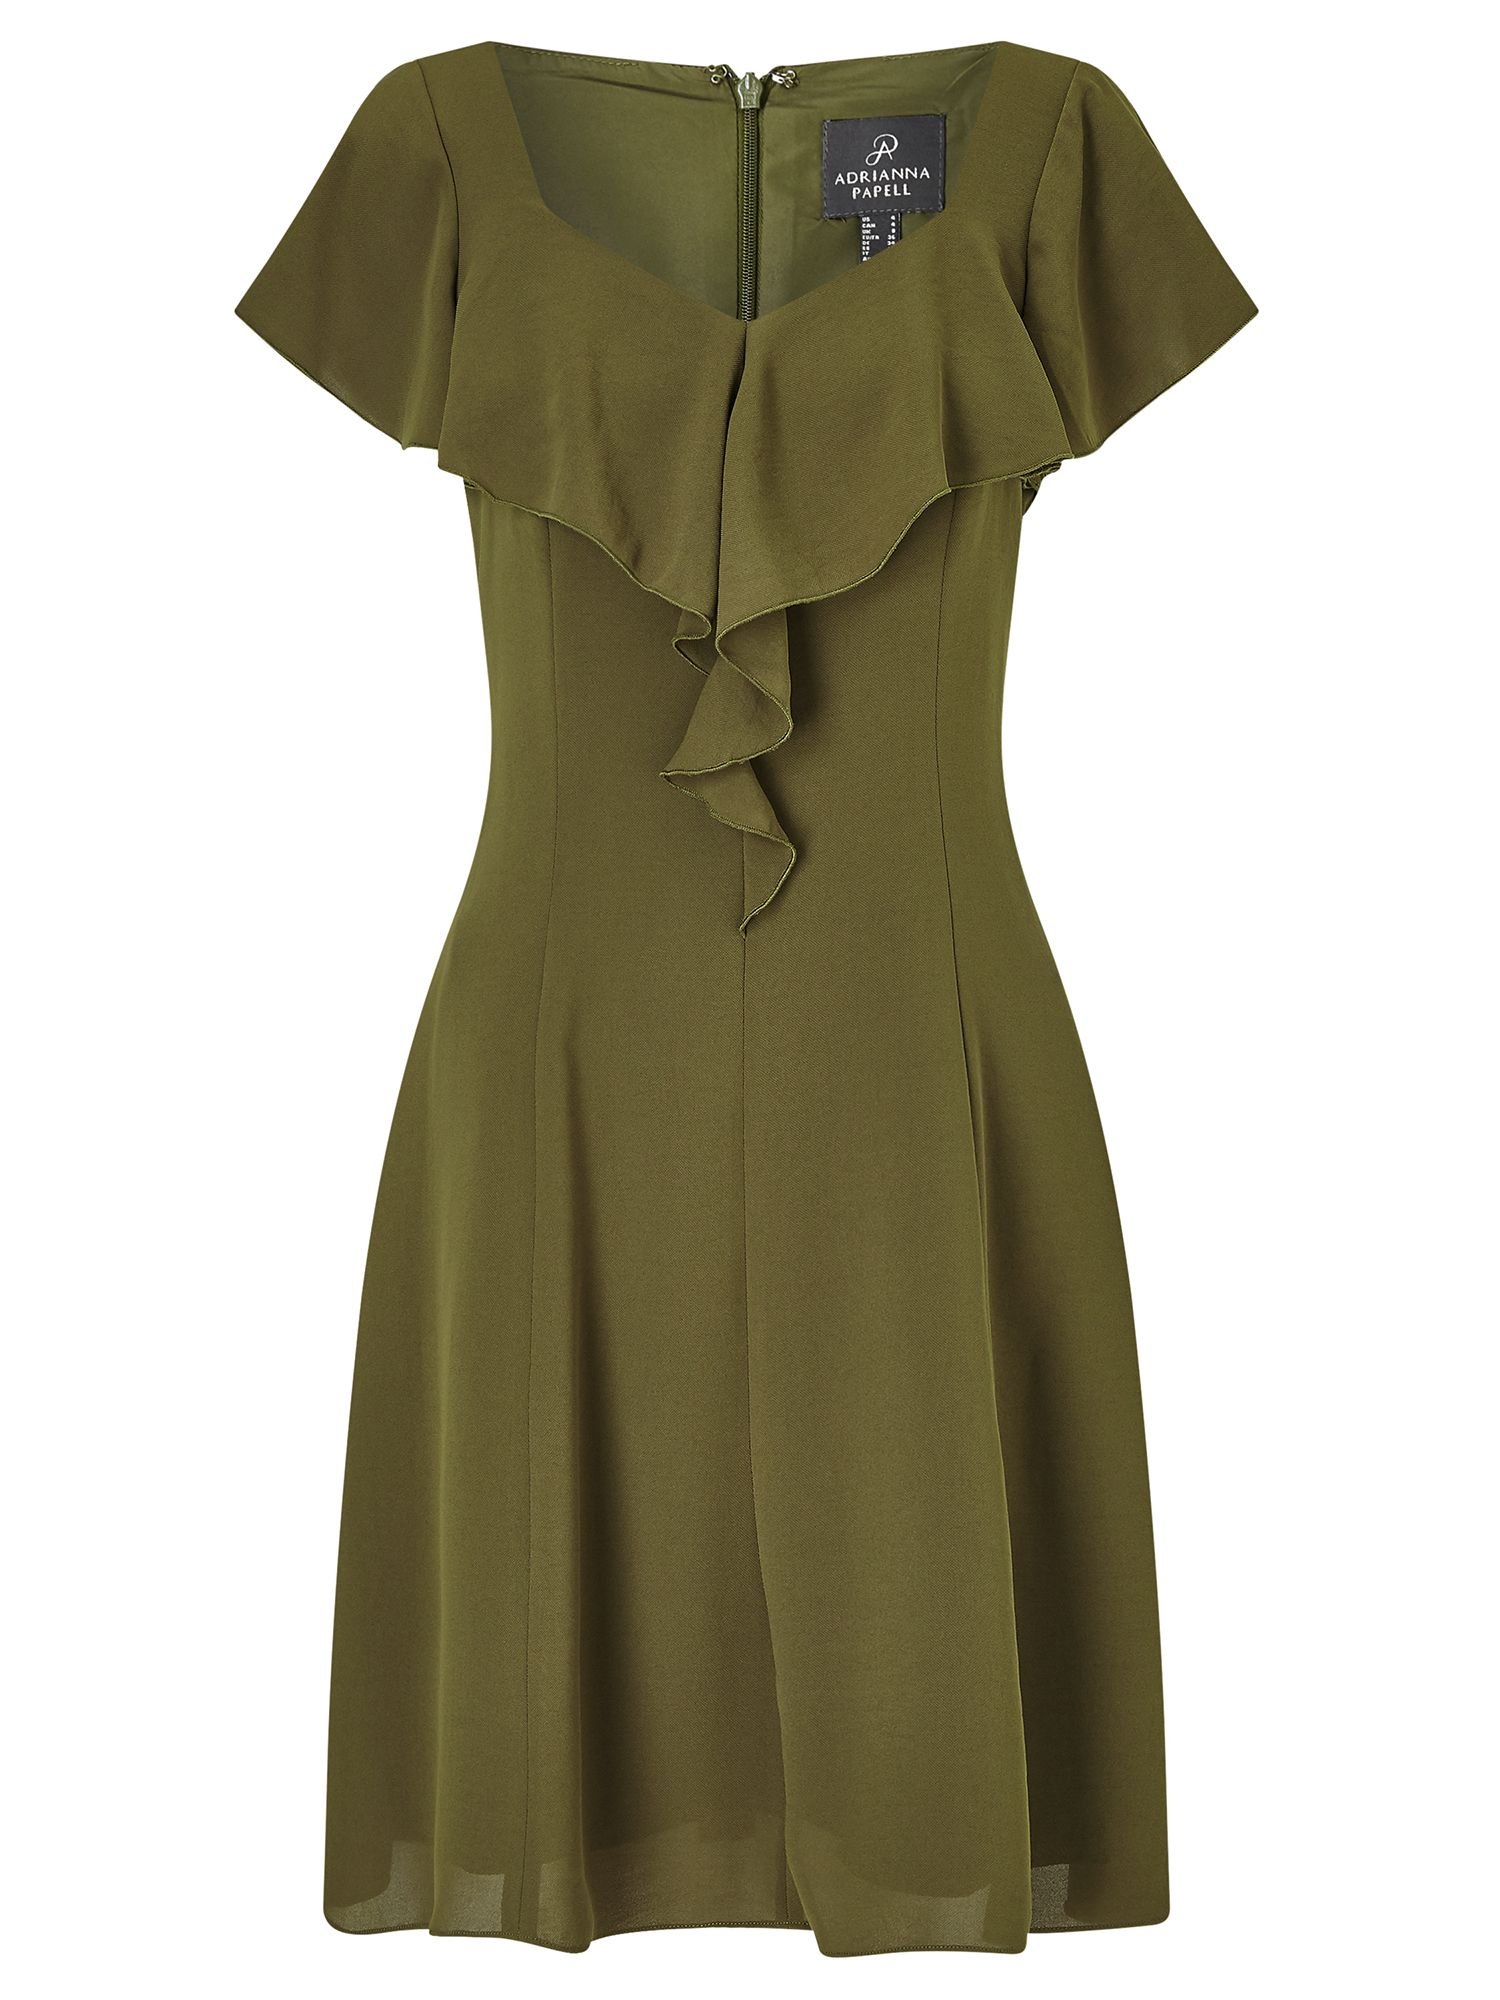 Adrianna Papell Ruffle Dress, Green